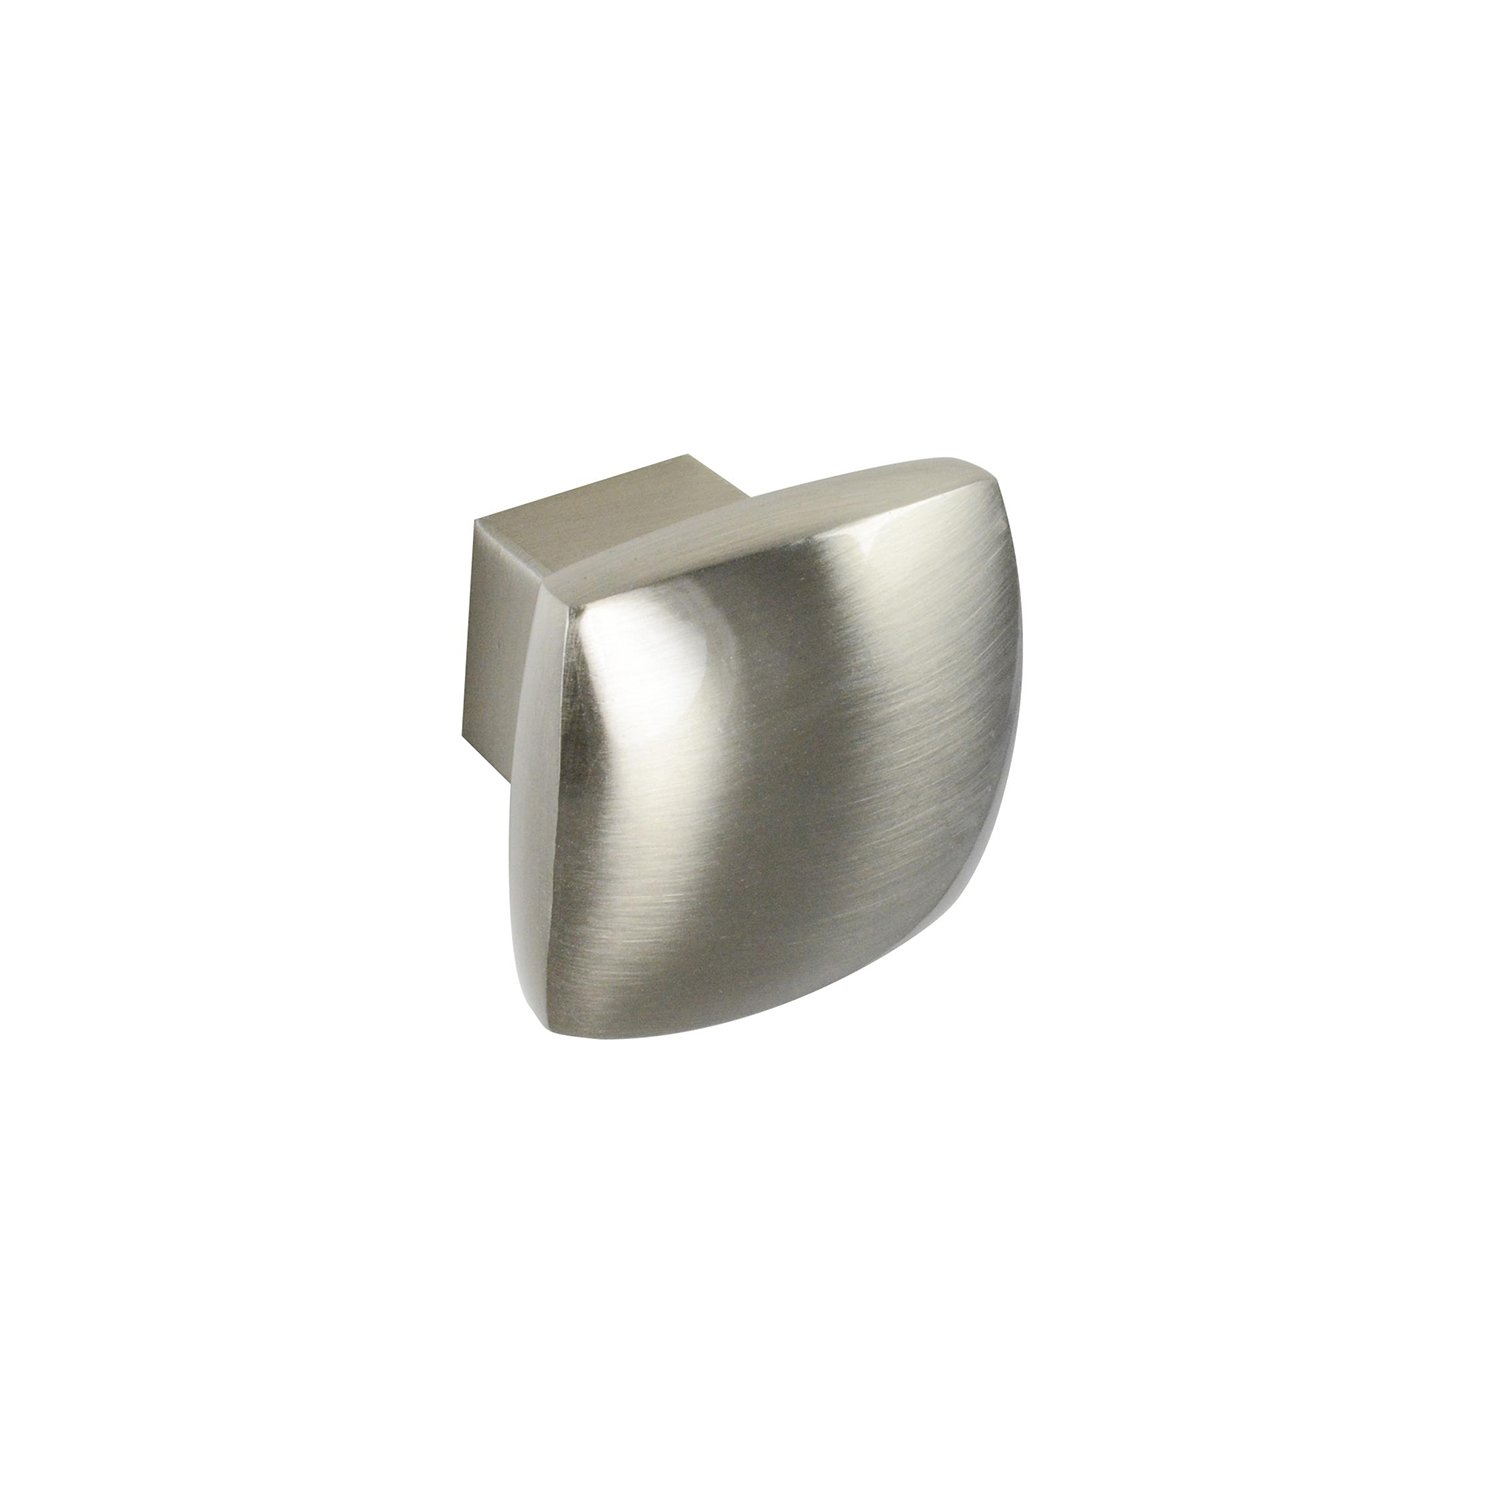 #2844 CKP Brand 1-3/16 in. (30mm) Rounded Square Knob, Brushed Nickel - 10 Pack